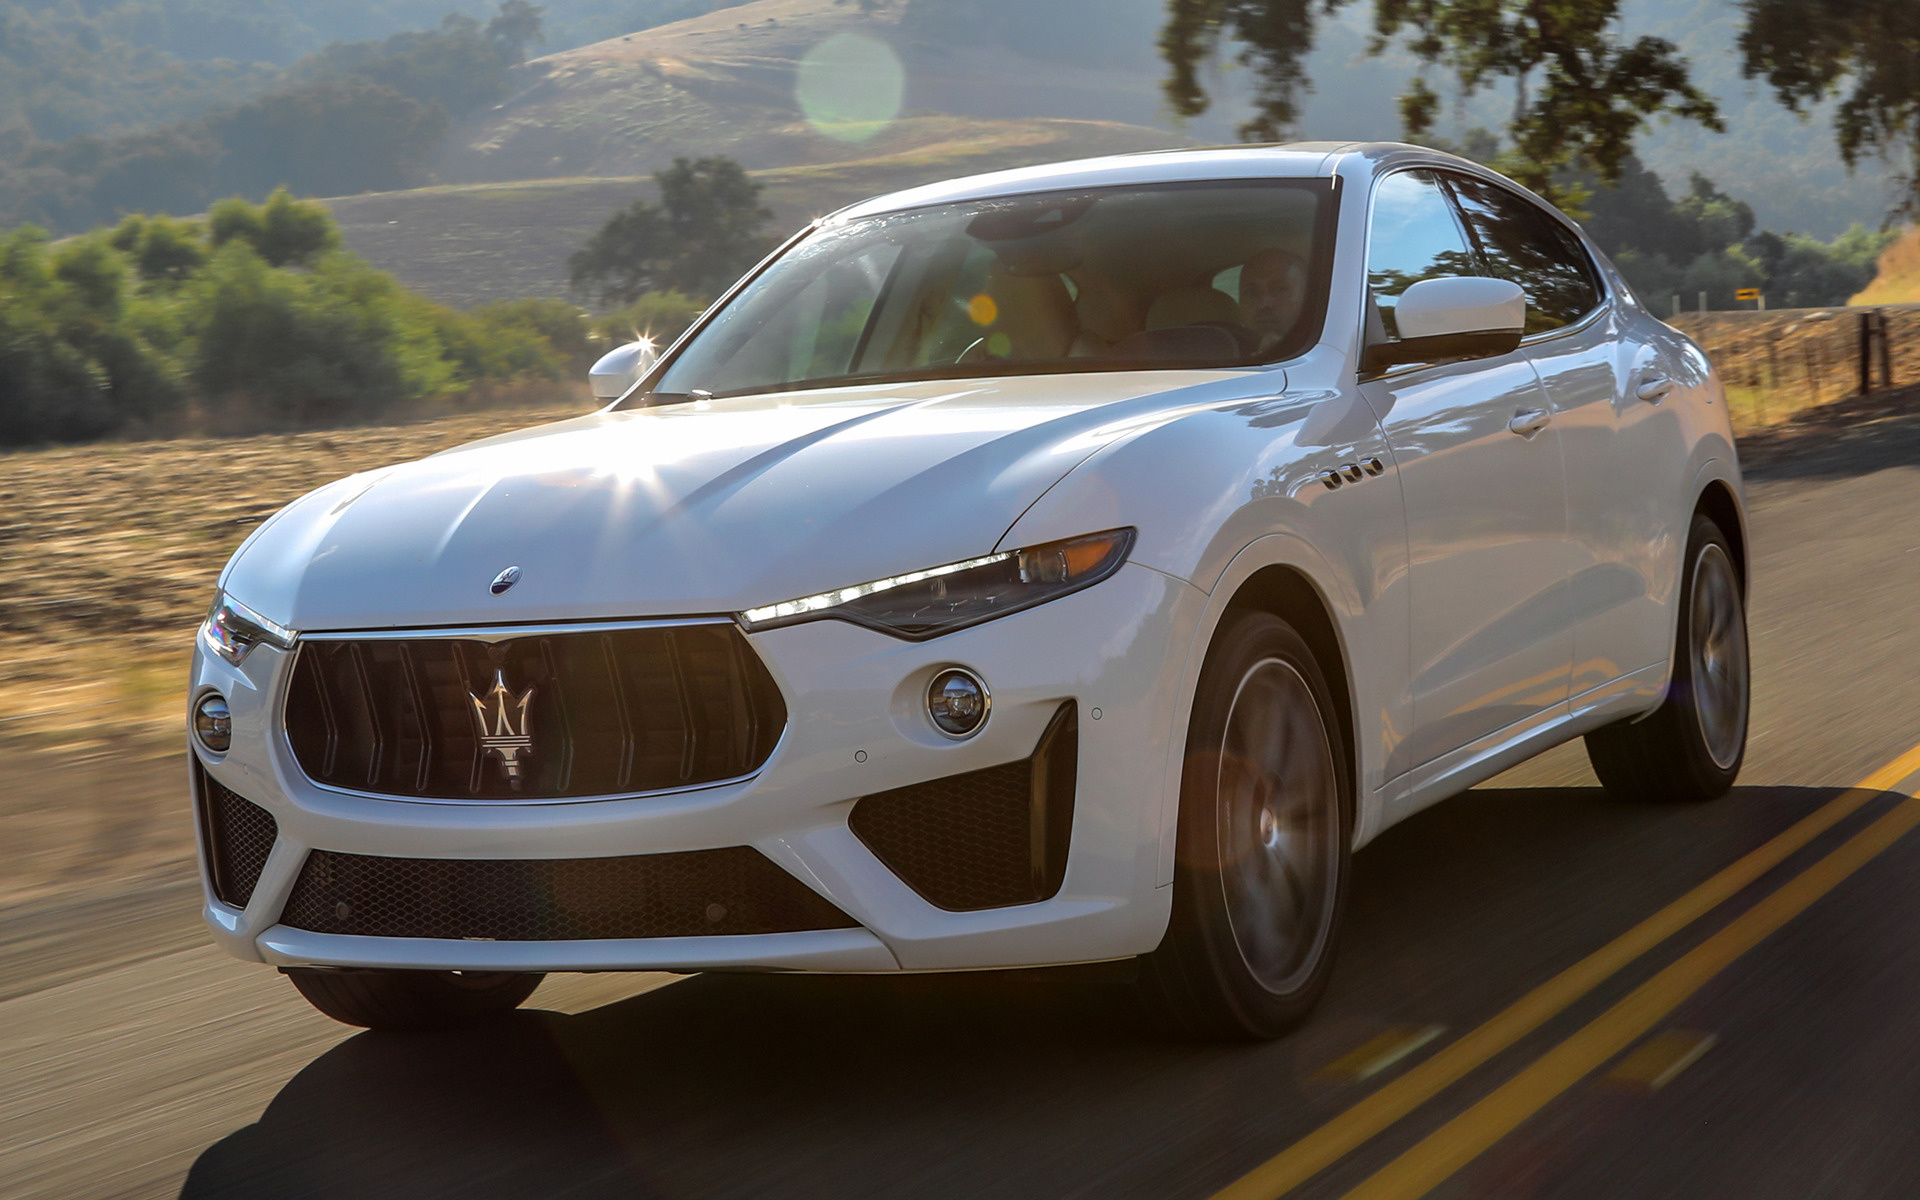 2019 maserati levante gts us wallpapers and hd images car pixel - Maserati levante wallpaper ...